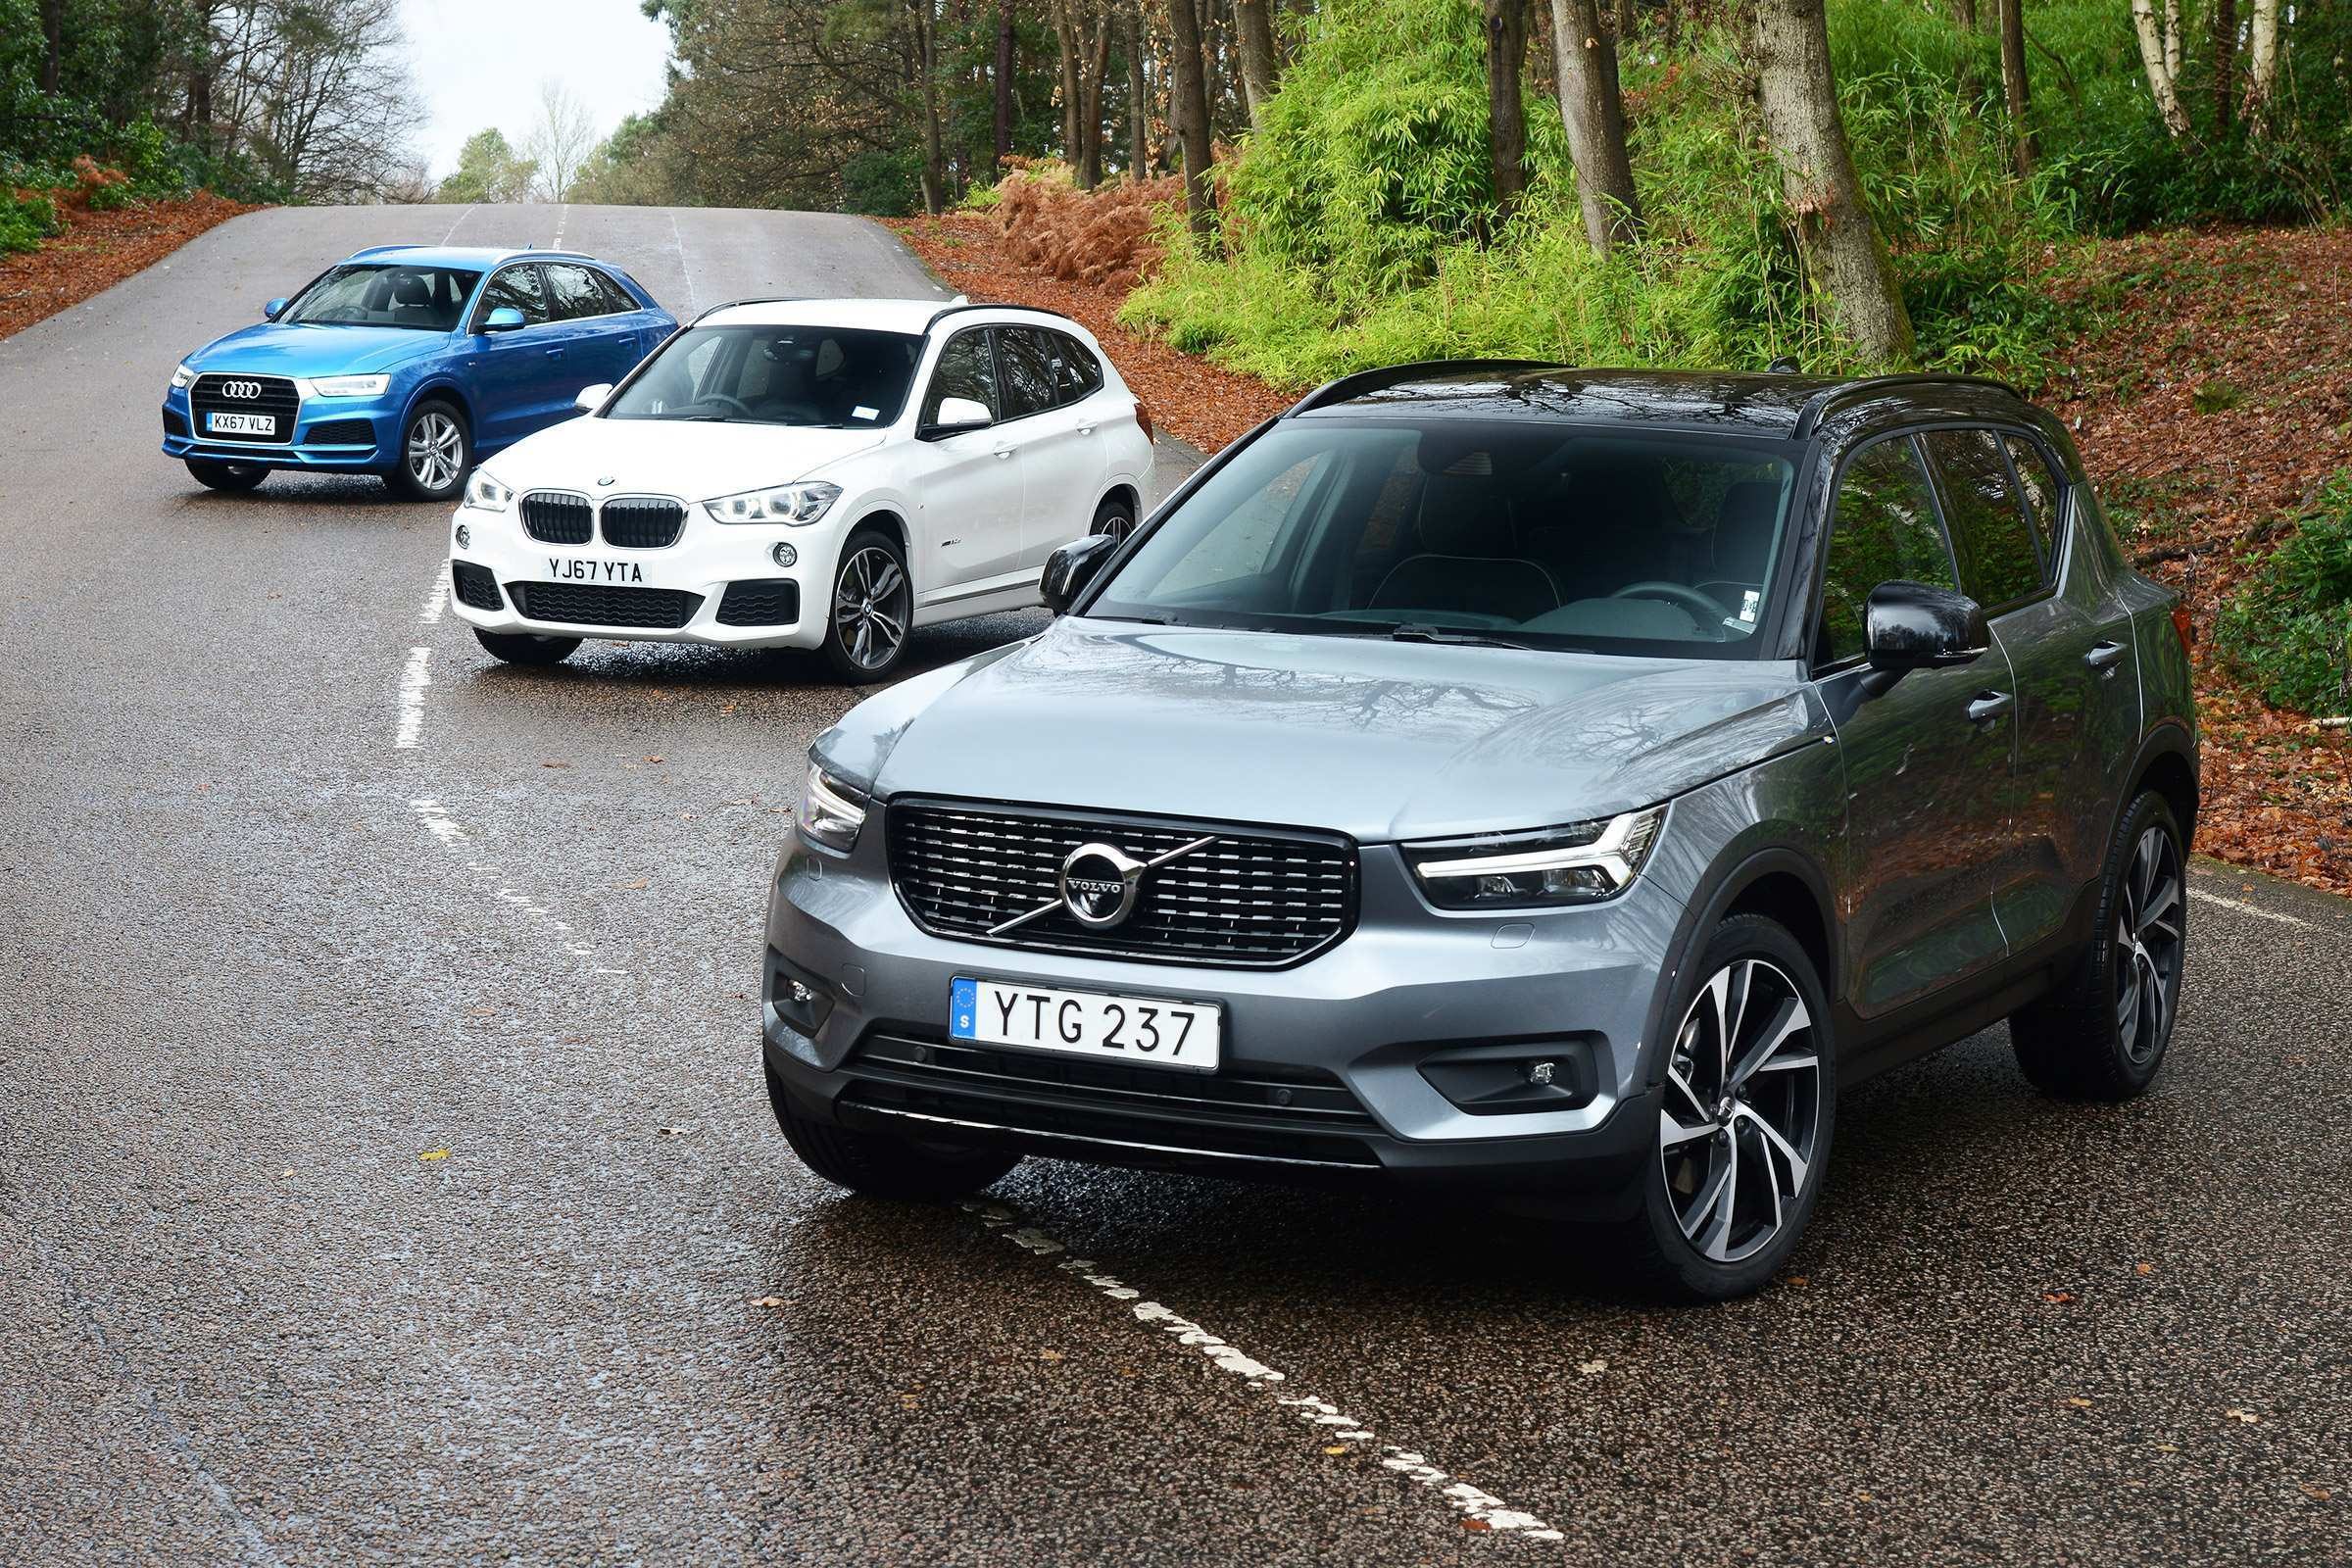 26 Concept of 2019 Audi Q3 Vs Volvo Xc40 Release Date Review by 2019 Audi Q3 Vs Volvo Xc40 Release Date